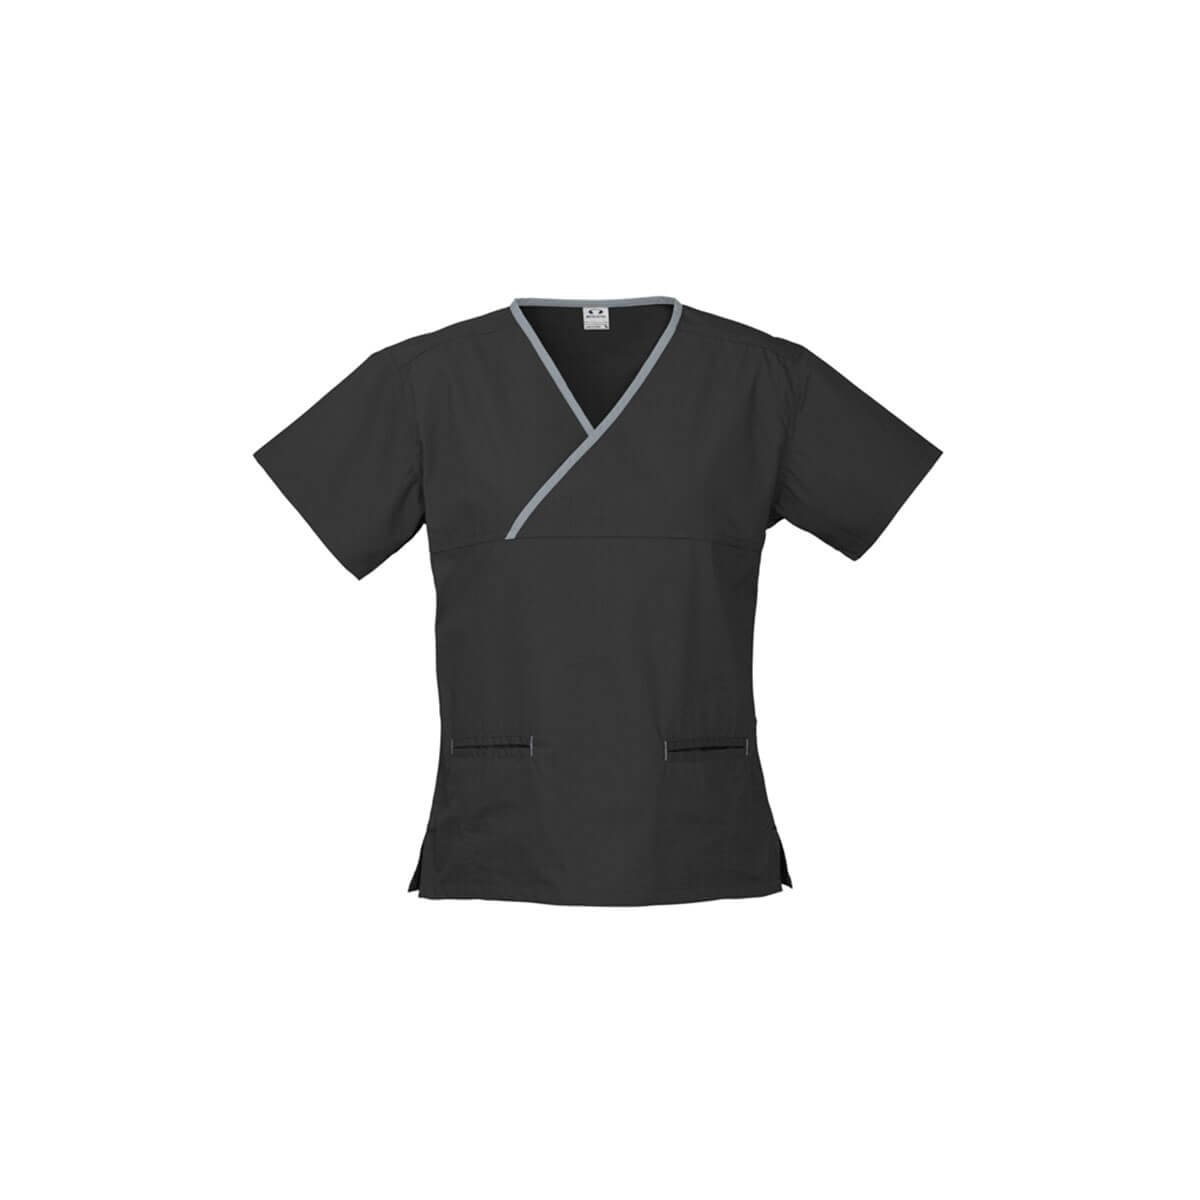 Ladies Contrast Crossover Scrubs Top-Black / Pewter